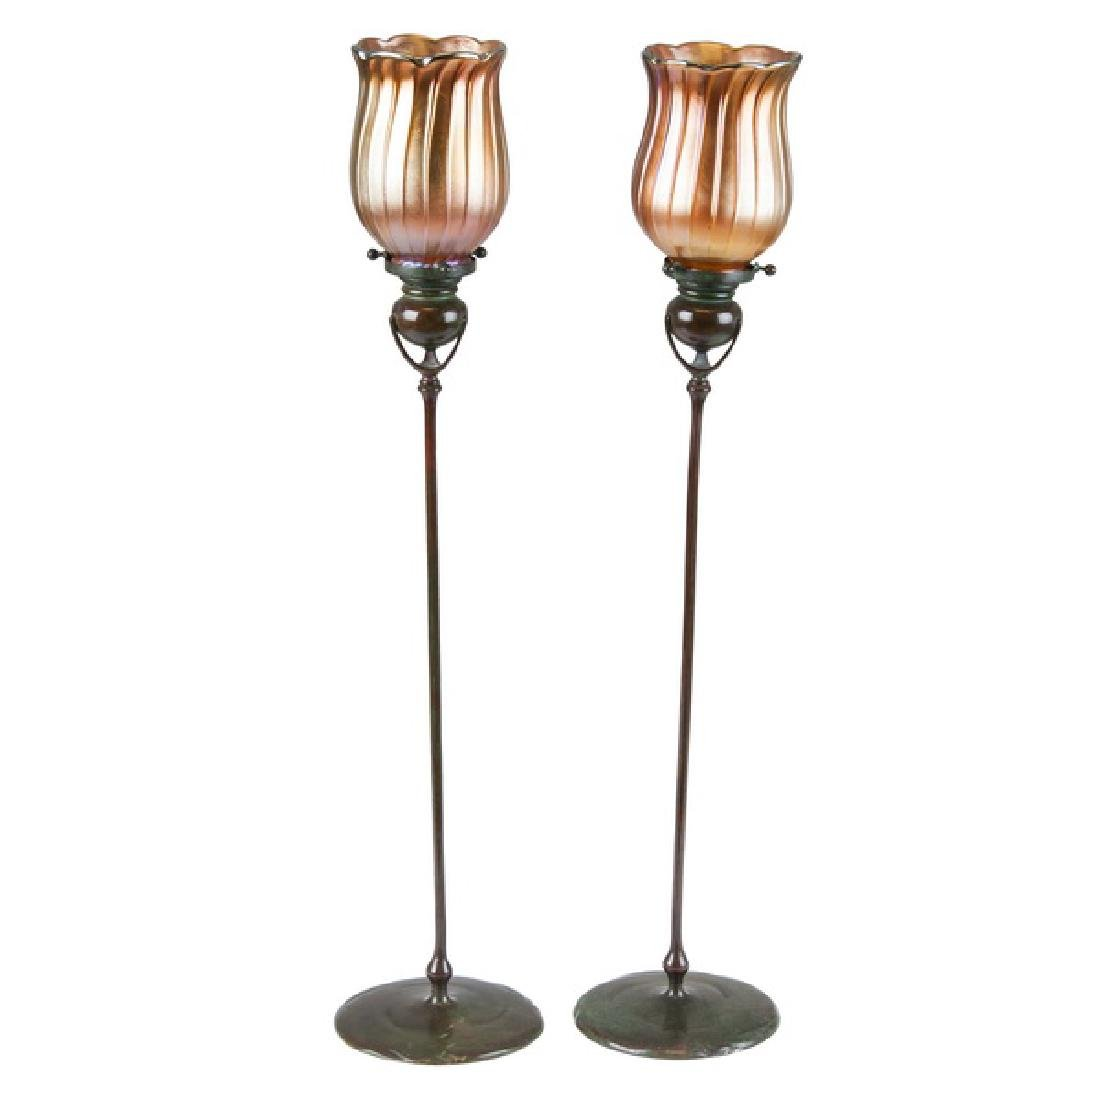 PAIR OF TIFFANY STUDIOS BRONZE CANDLESTICKS WITH ART